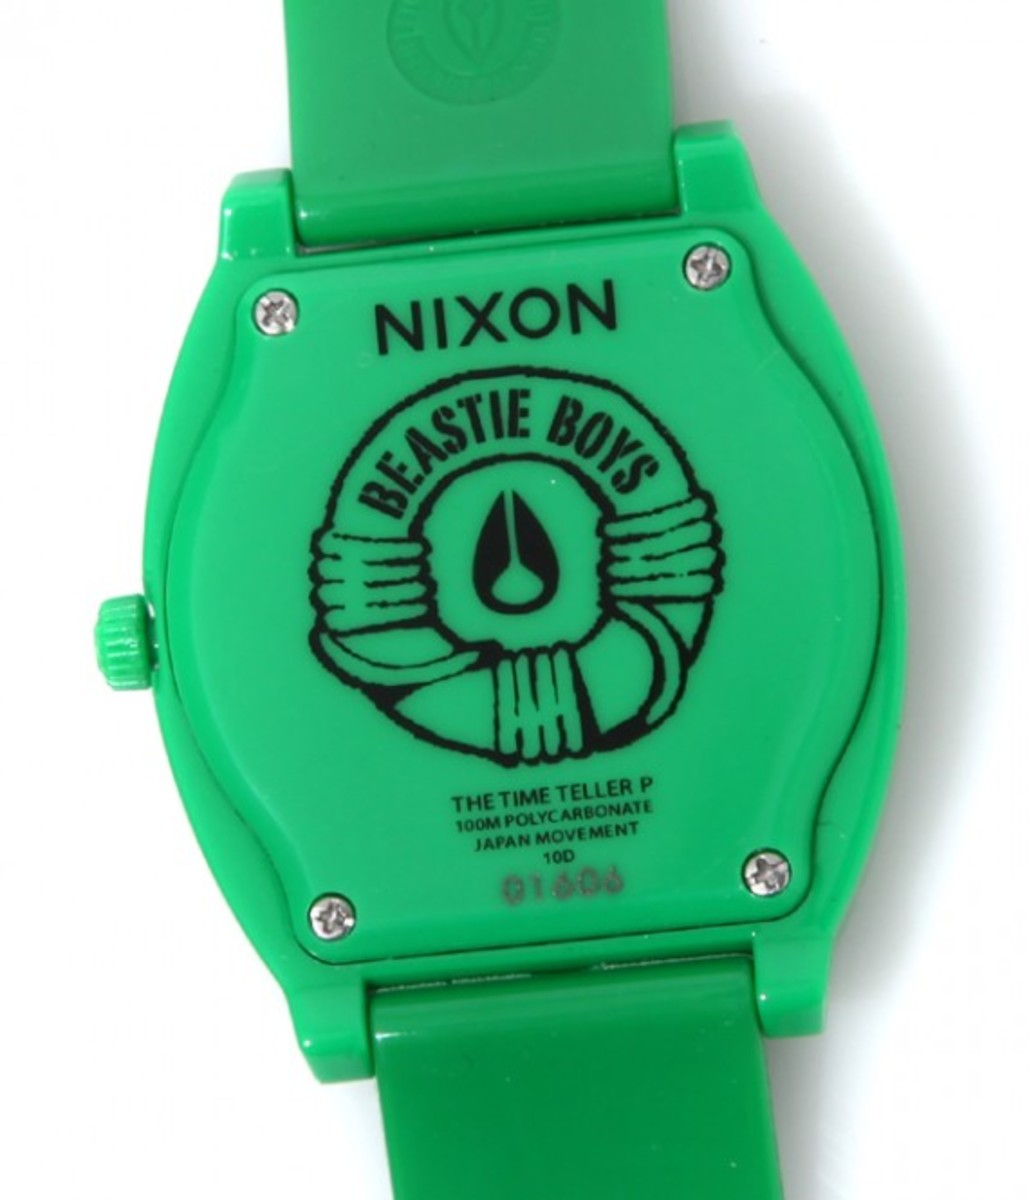 beastie-boys-nixon-time-teller-p-green-05